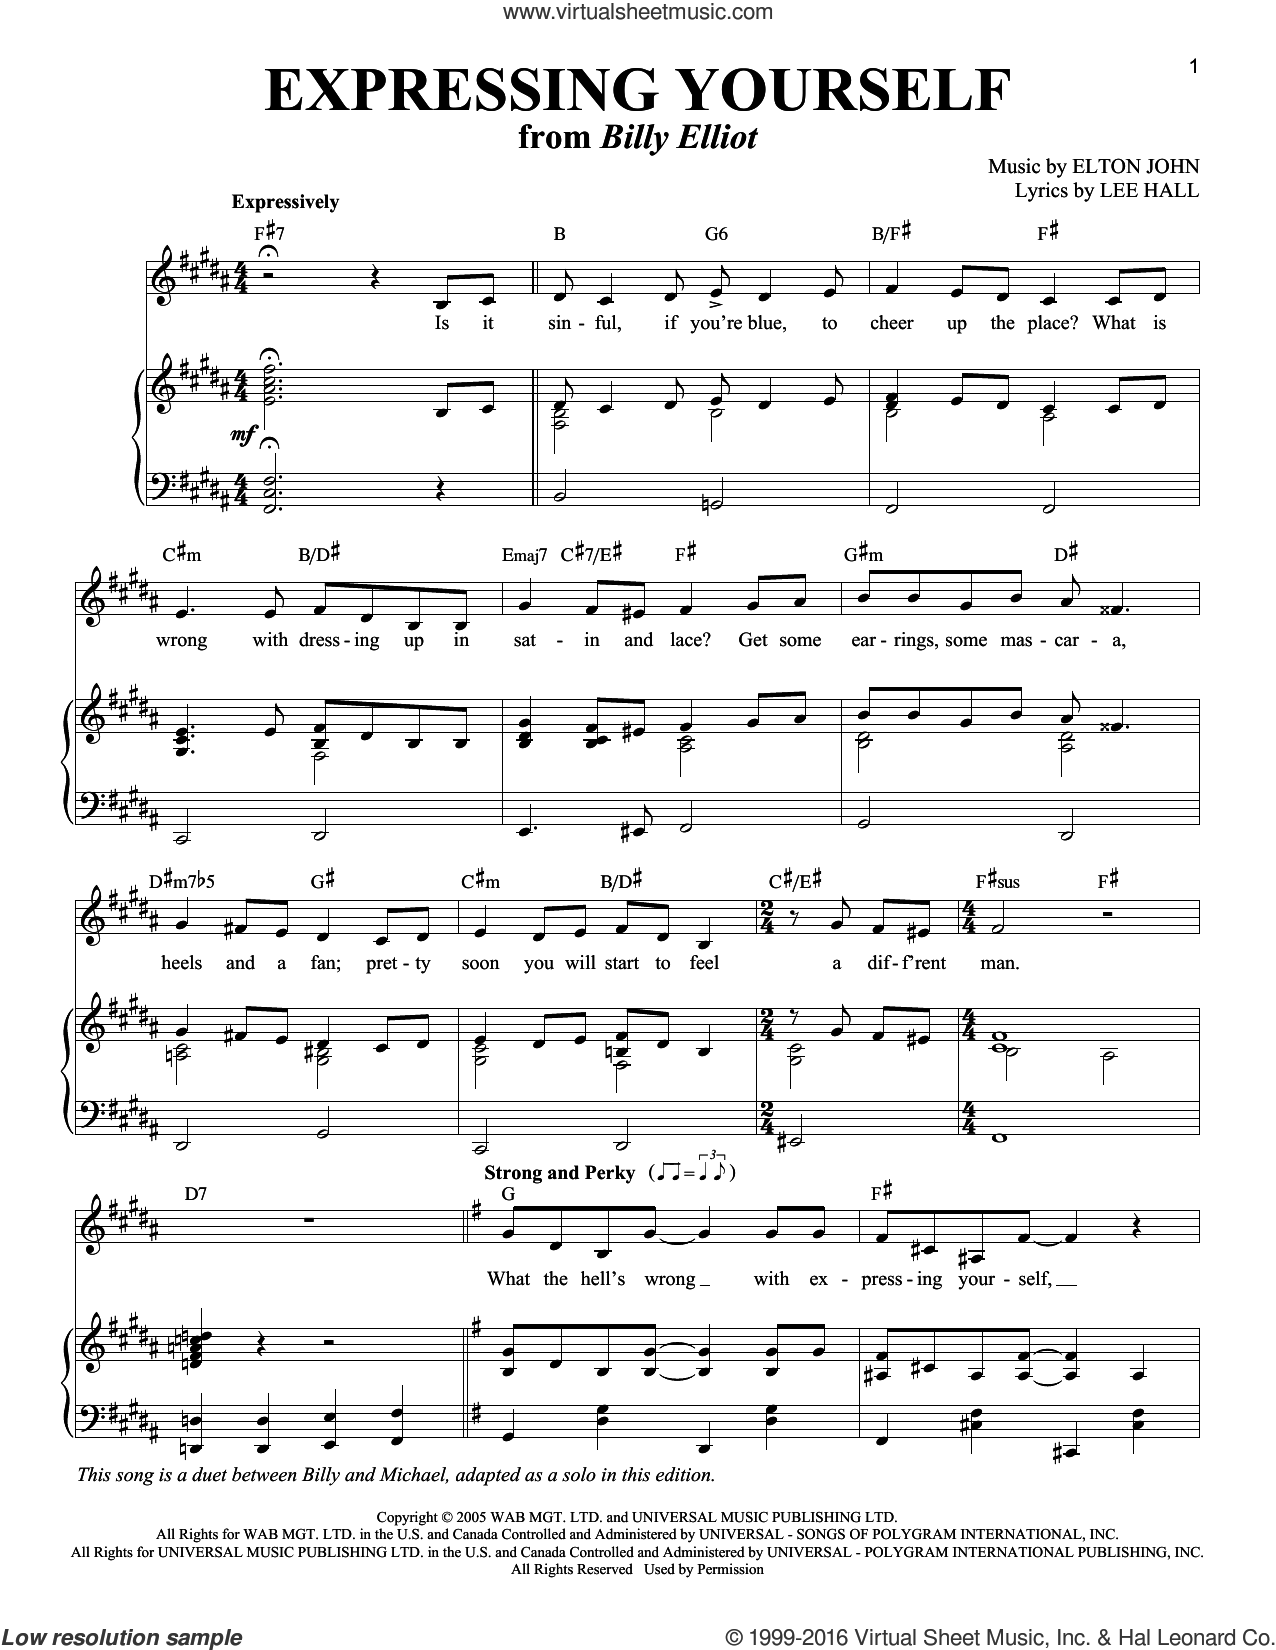 Expressing Yourself sheet music for voice and piano by Elton John, intermediate voice. Score Image Preview.